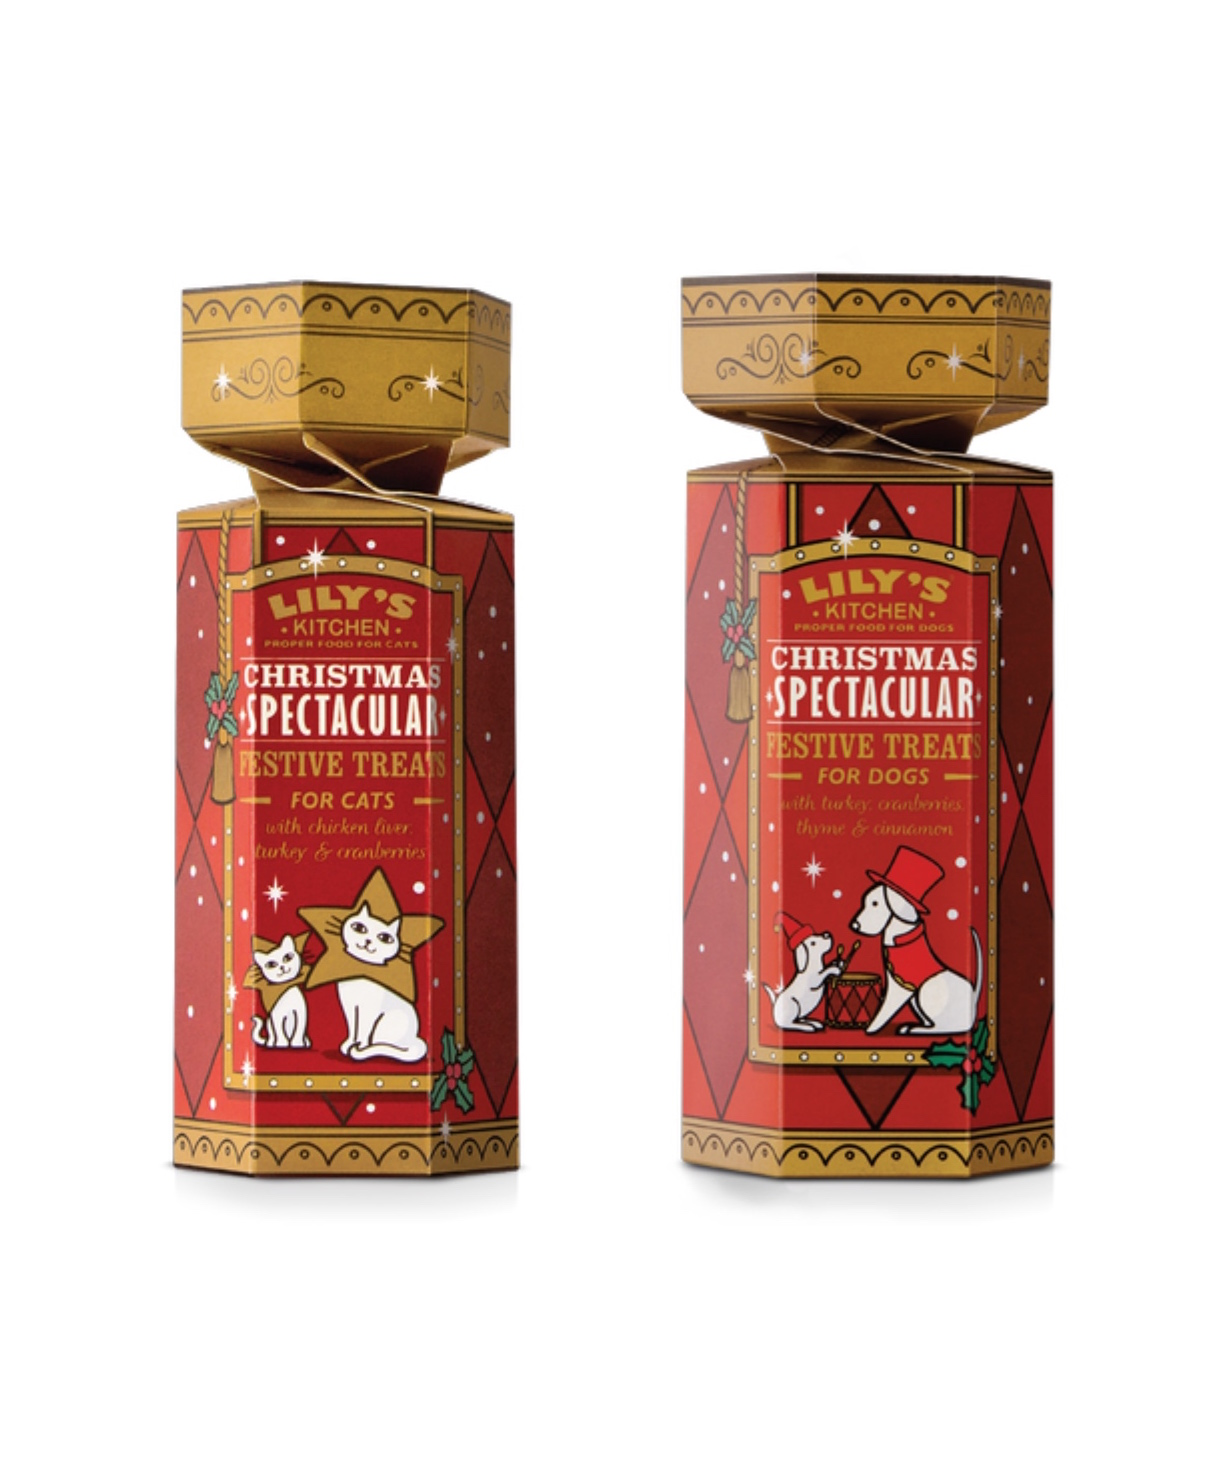 Lily's Kitchen Christmas Spectacular: from £3.49